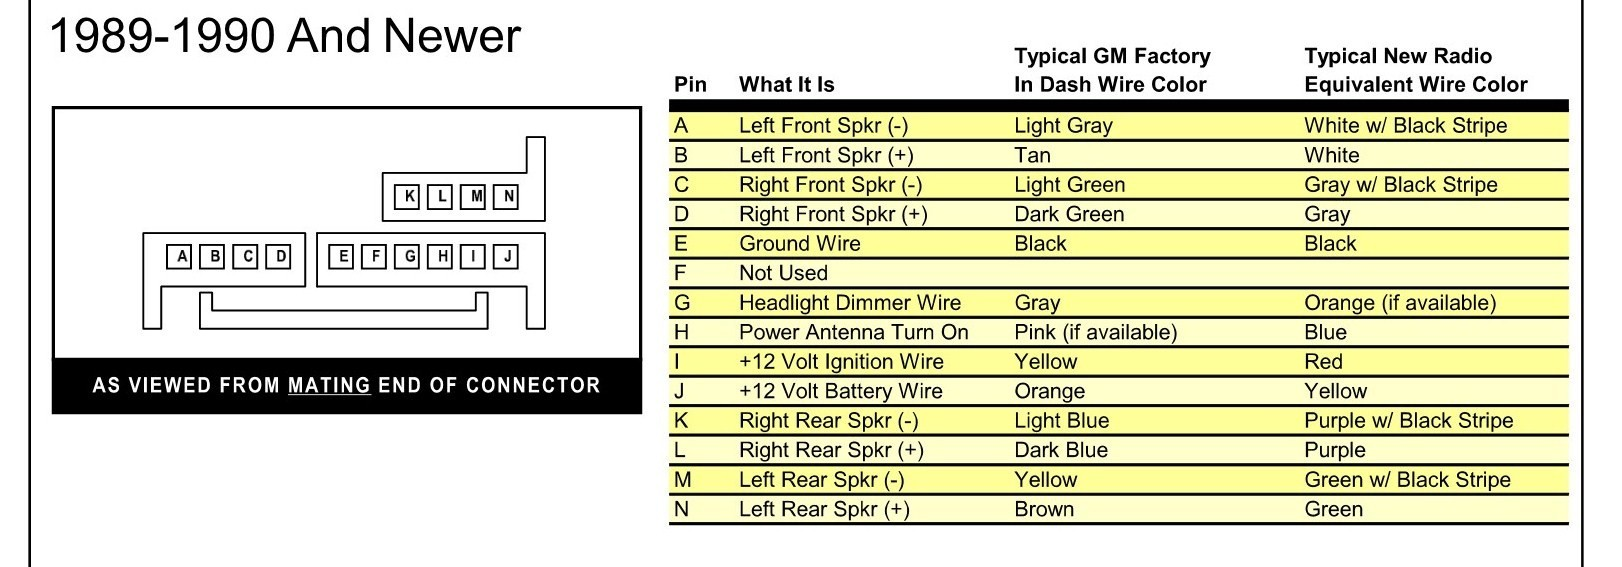 2001 mustang wiring harness diagram ford mustang